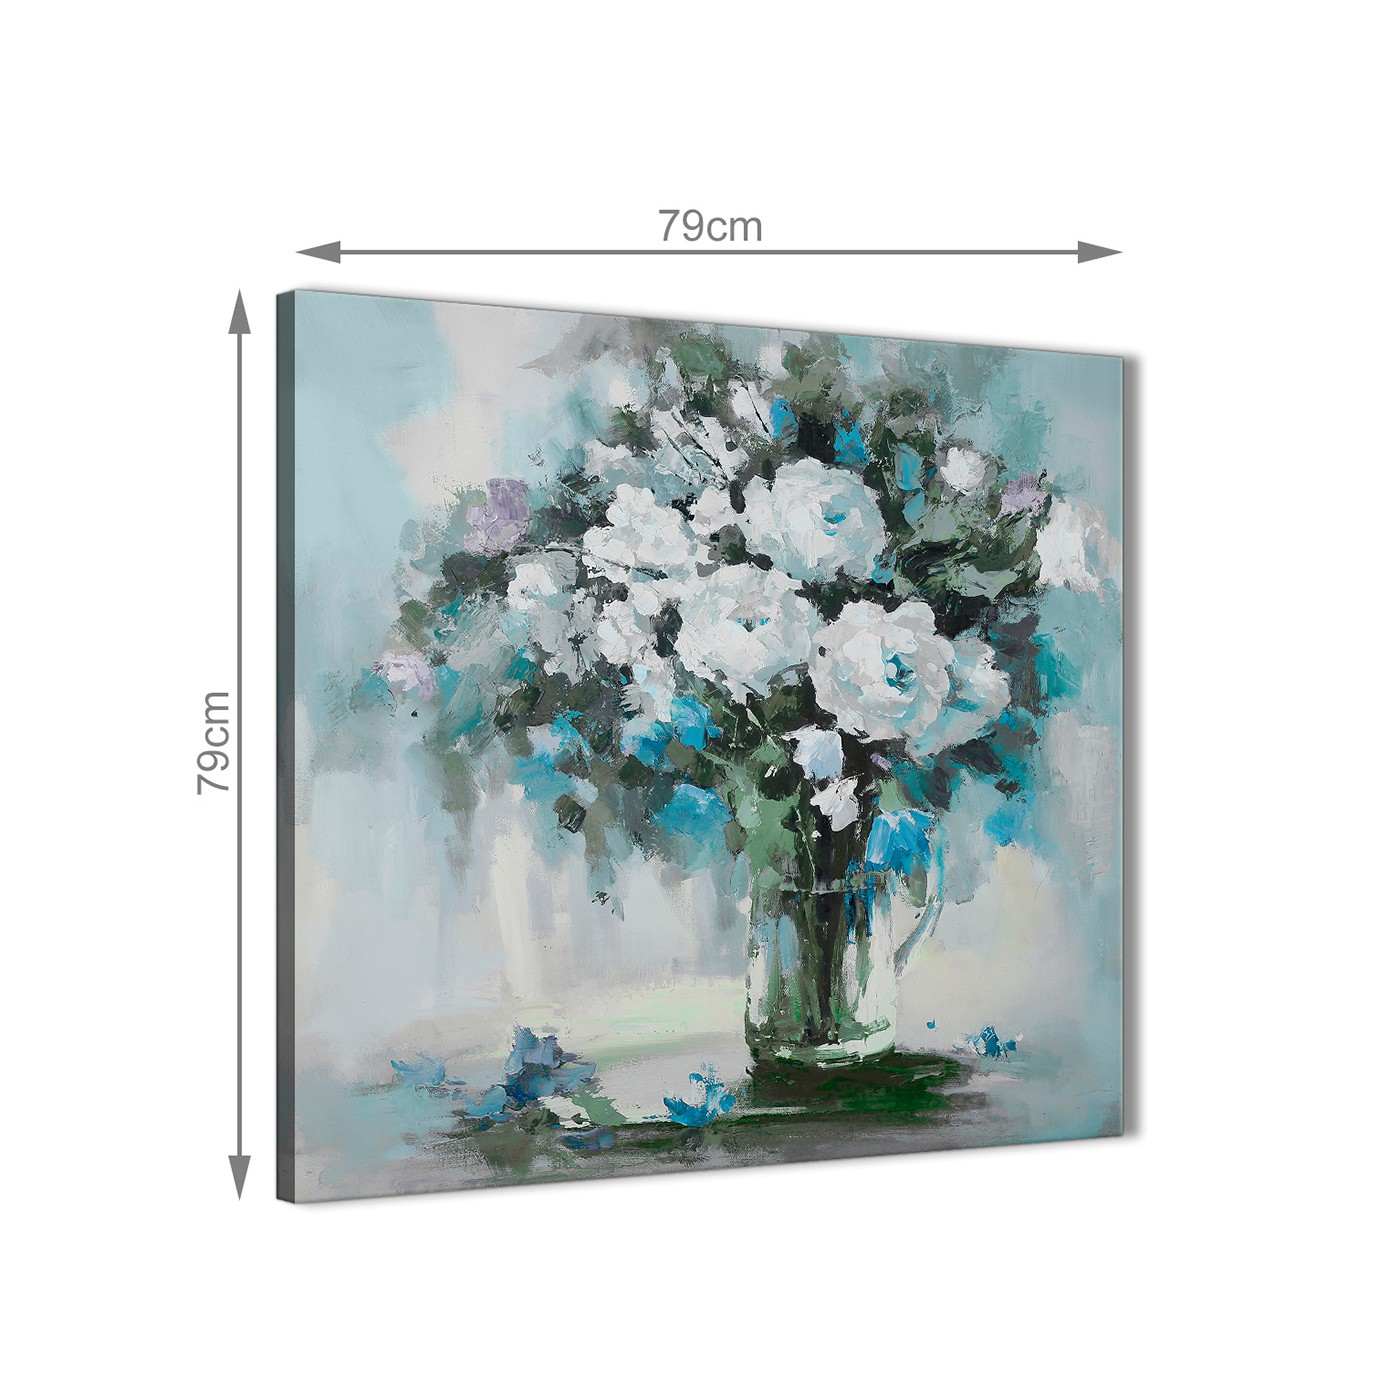 Wall art flower painting - Display Gallery Item 3 Next Teal White Flowers Painting Abstract Living Room Canvas Wall Art Decorations 1s440l 79cm Square